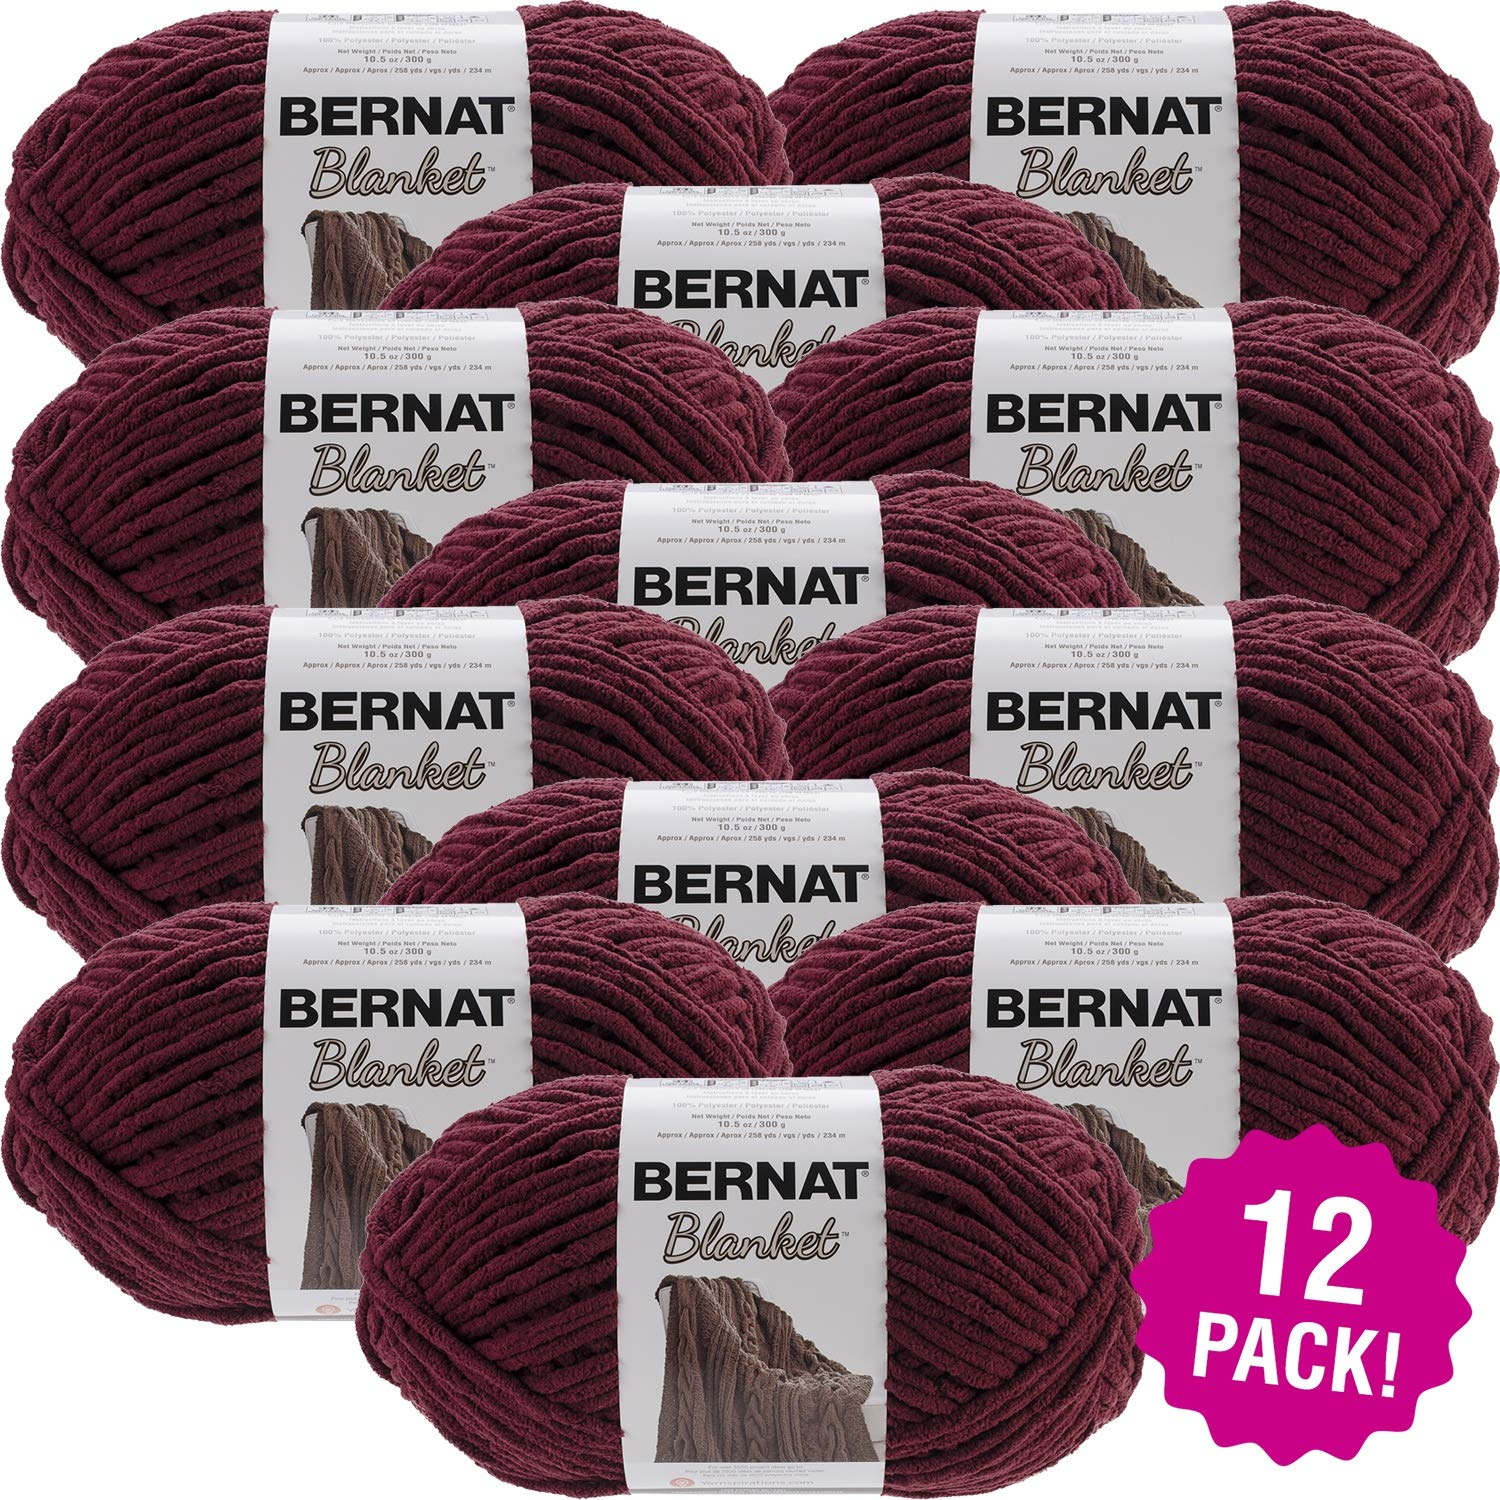 Bernat 99658 Blanket Big Ball Yarn-Purple Plum, Multipack of 12, Pack